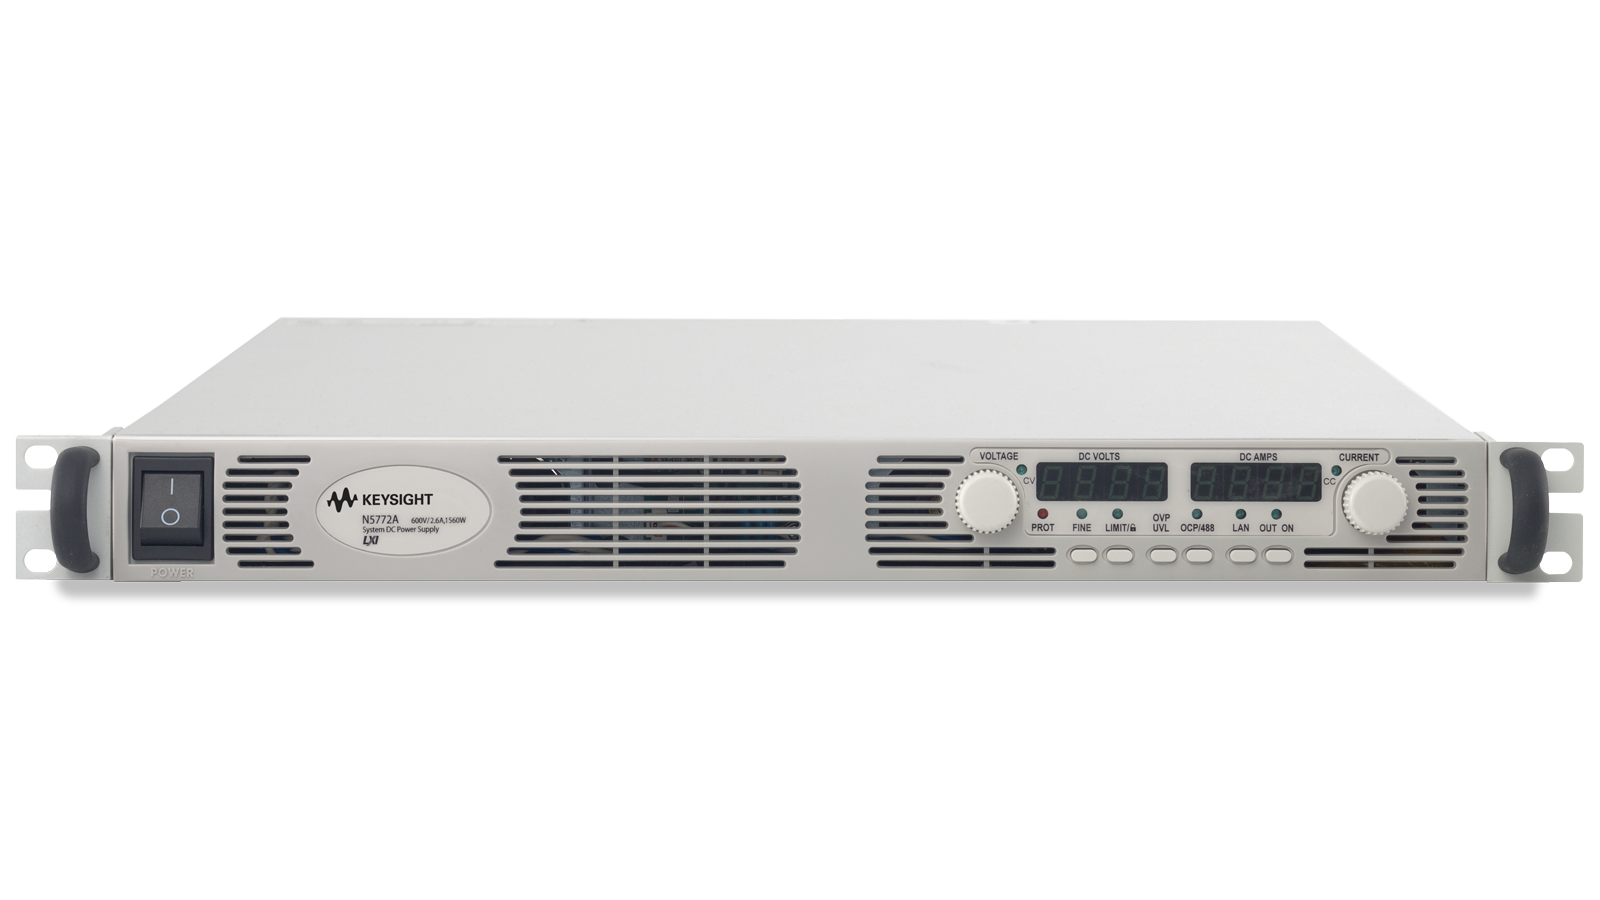 N5700 Series Programmable Supply Front Top